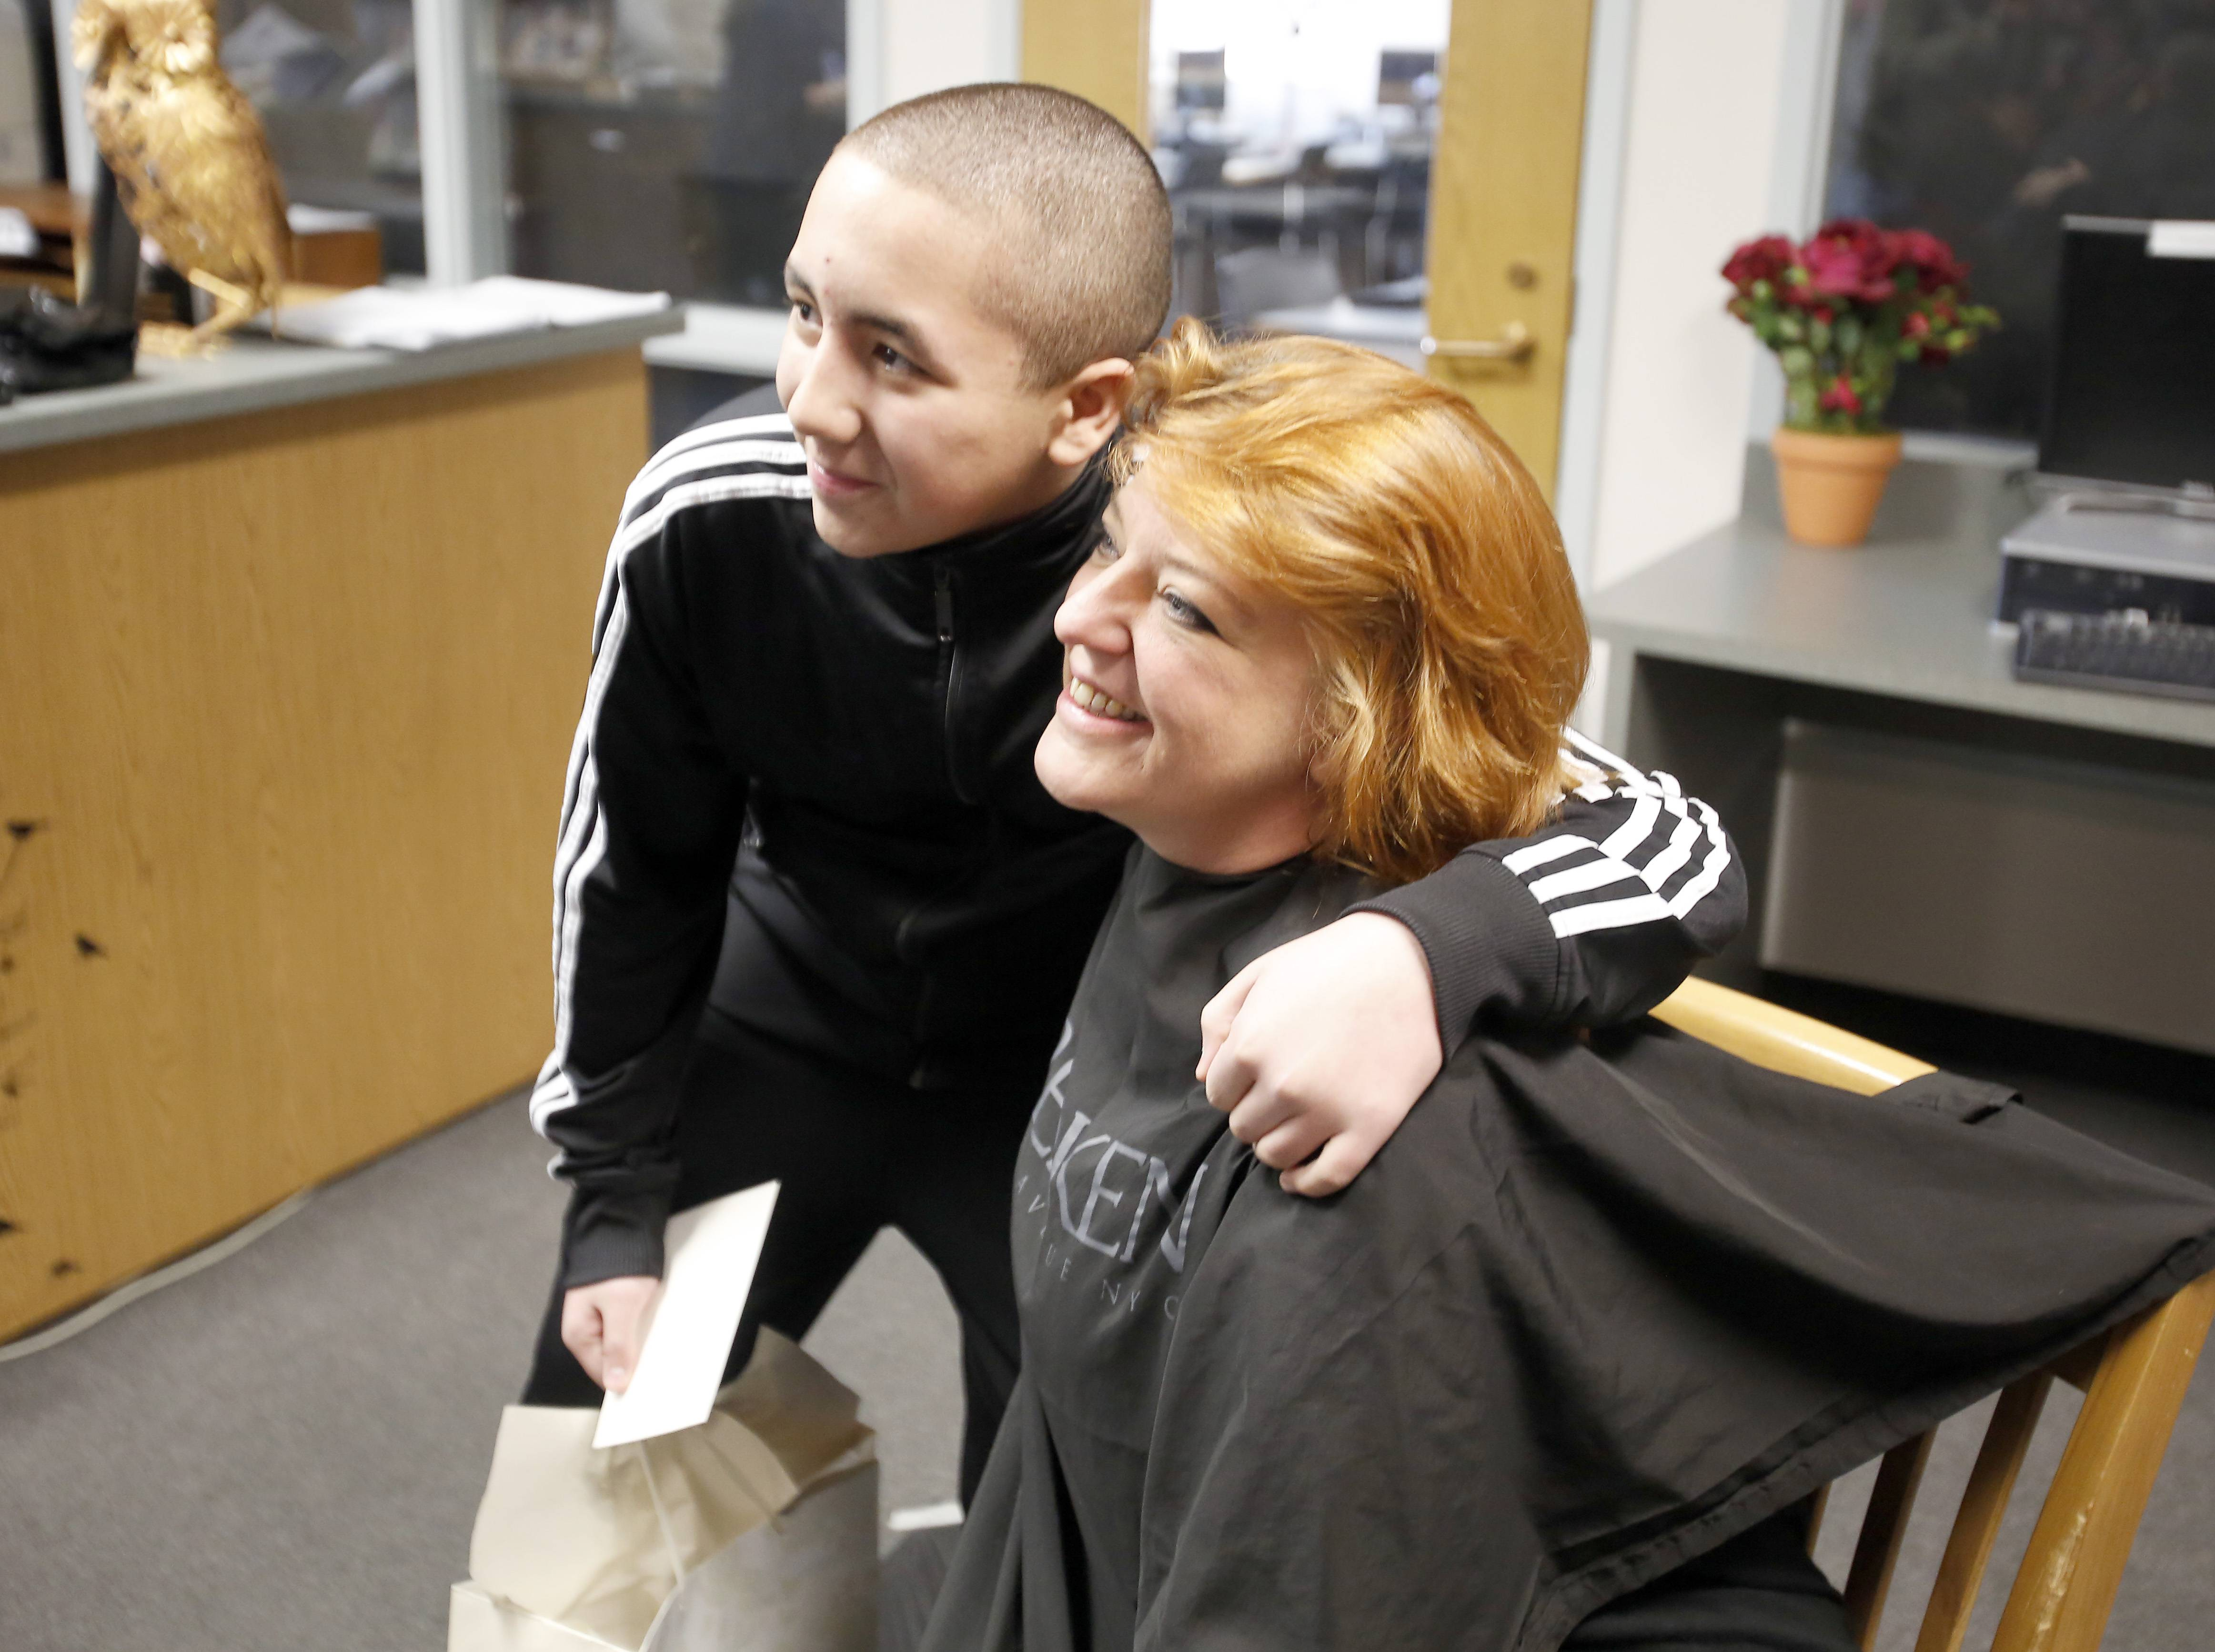 Ellis Middle School secretary Cyndi Downey poses Thursday with Christian Acevedo, an eighth-grader at Kenyon Woods Middle School in South Elgin, who's raising money for cancer research. Downey had her head shaved as part of the St. Baldrick's event at the Elgin school. The St. Baldrick's Foundation helps fund childhood cancer research.